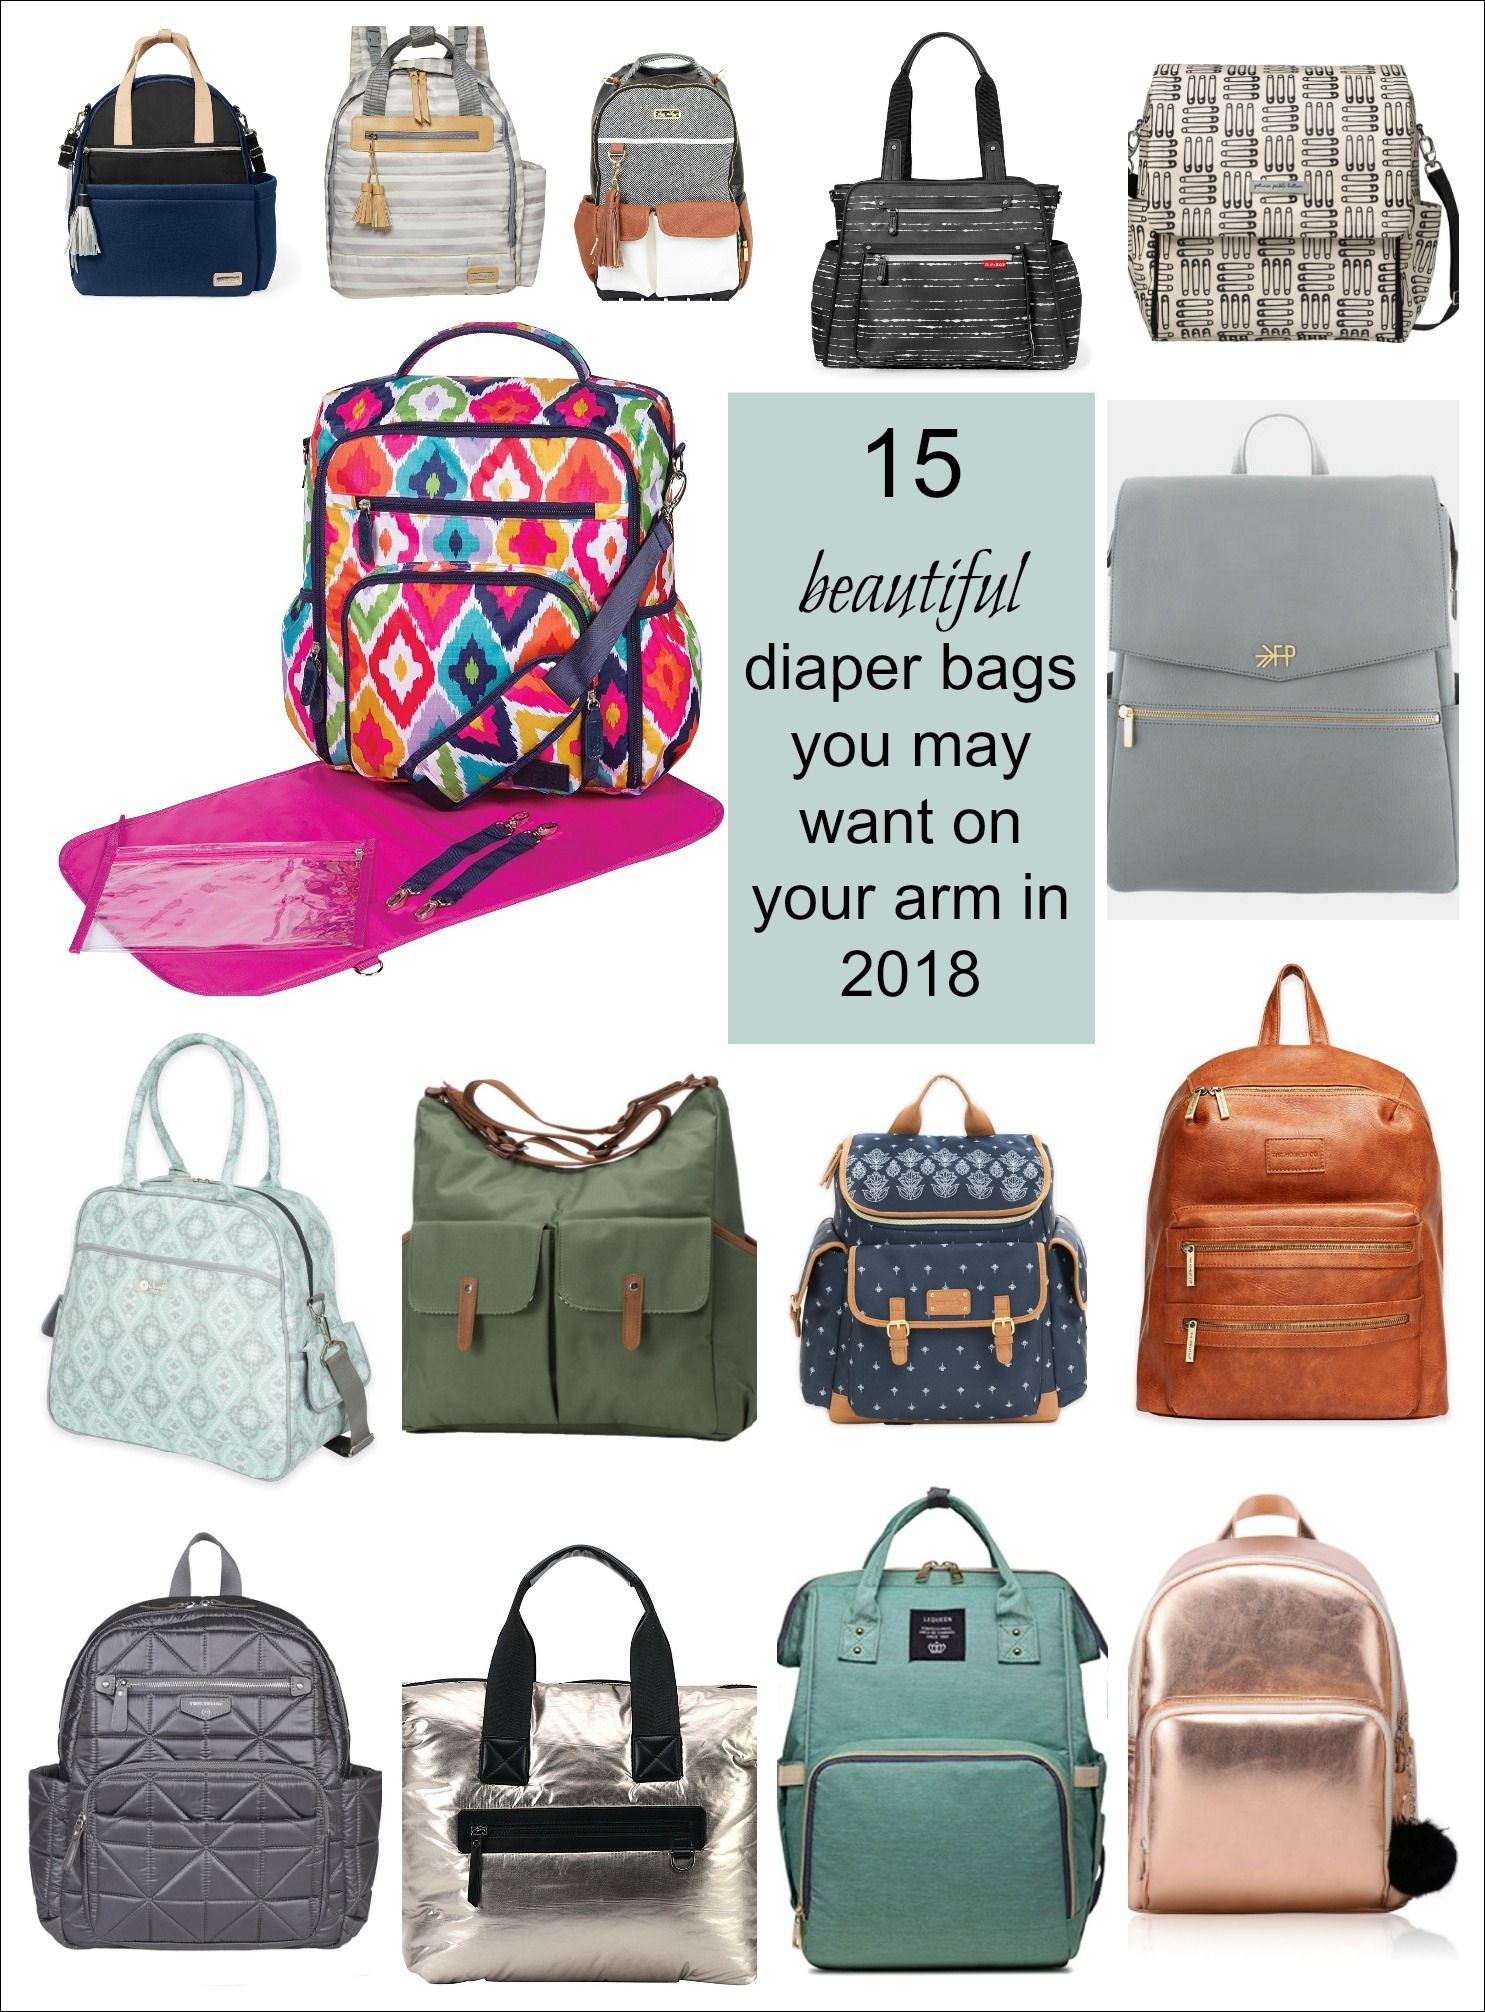 15 Beautiful New Diaper Bags You May Want On Your Arm In 2018 Babycenter Blog